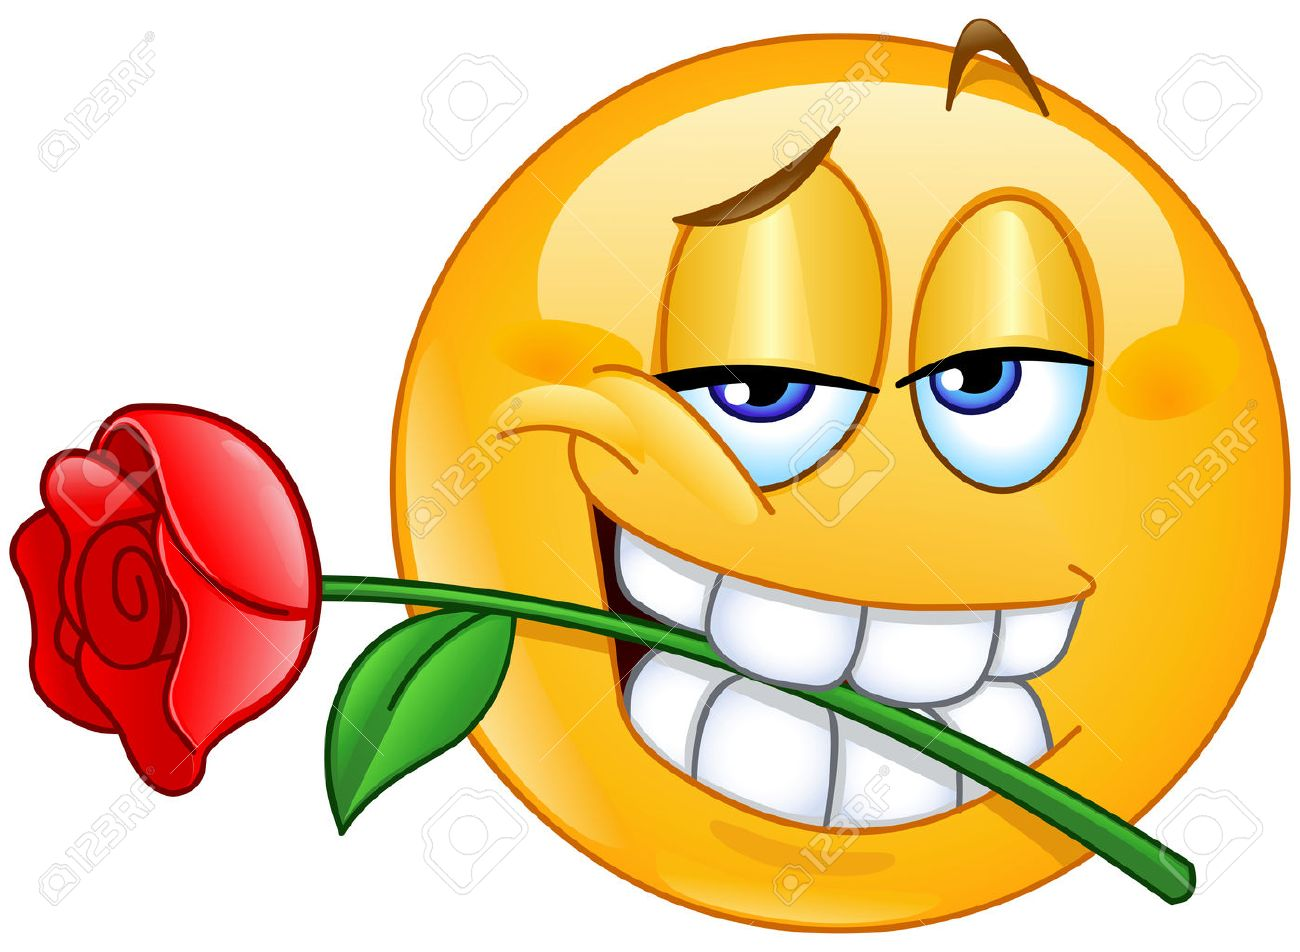 https://previews.123rf.com/images/yayayoy/yayayoy1609/yayayoy160900006/62764640-charming-emoticon-holding-red-rose-flower-between-teeth-in-mouth-Stock-Photo.jpg